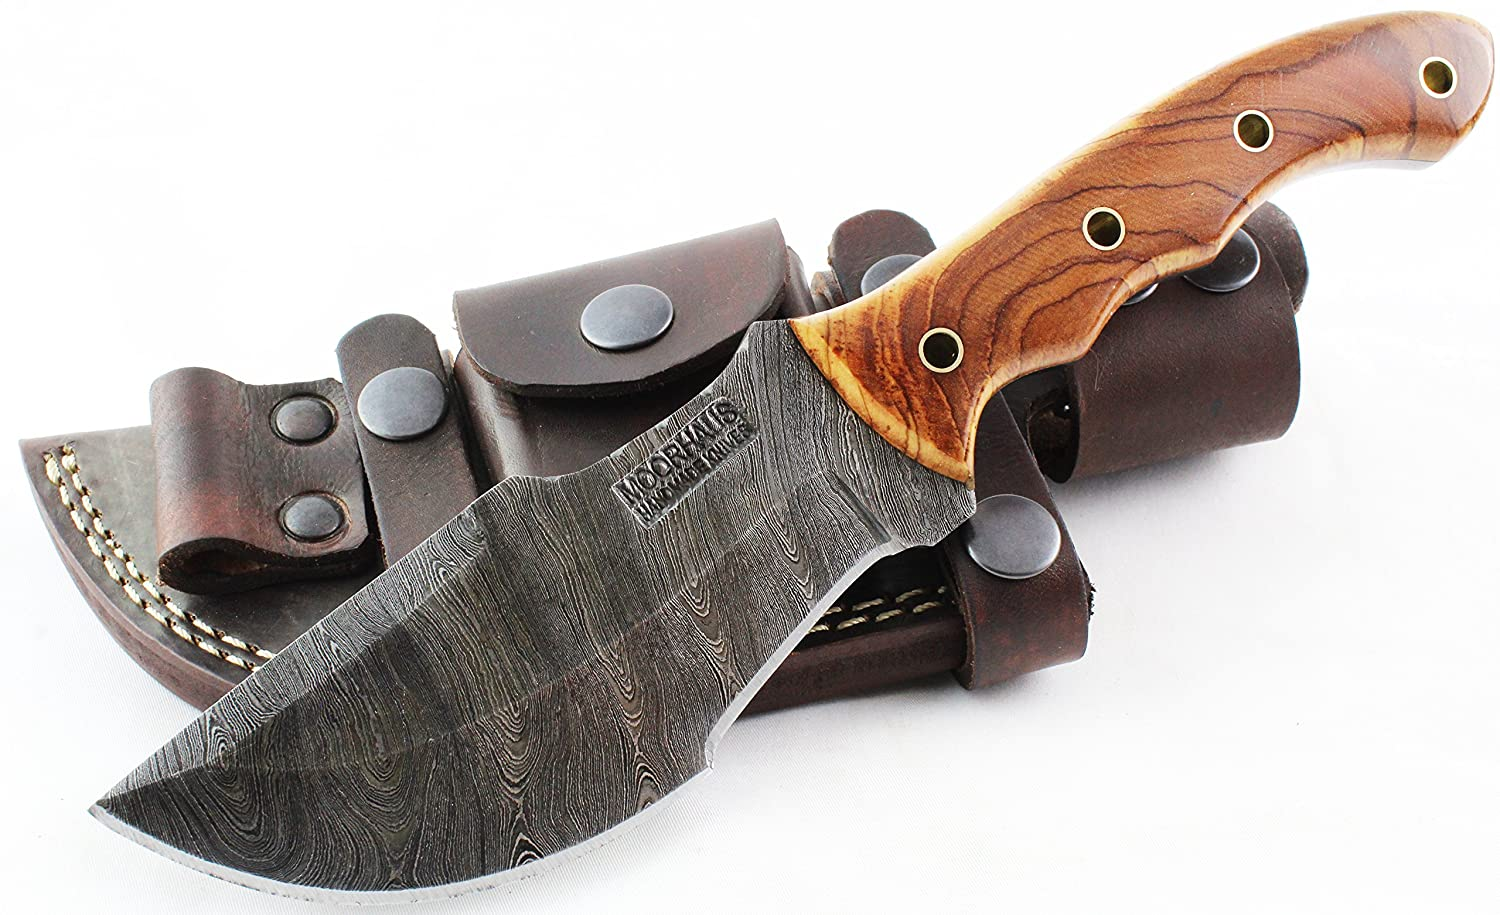 Moorhaus Handmade Custom Firestorm Damascus Olive Wood Tracker Knife